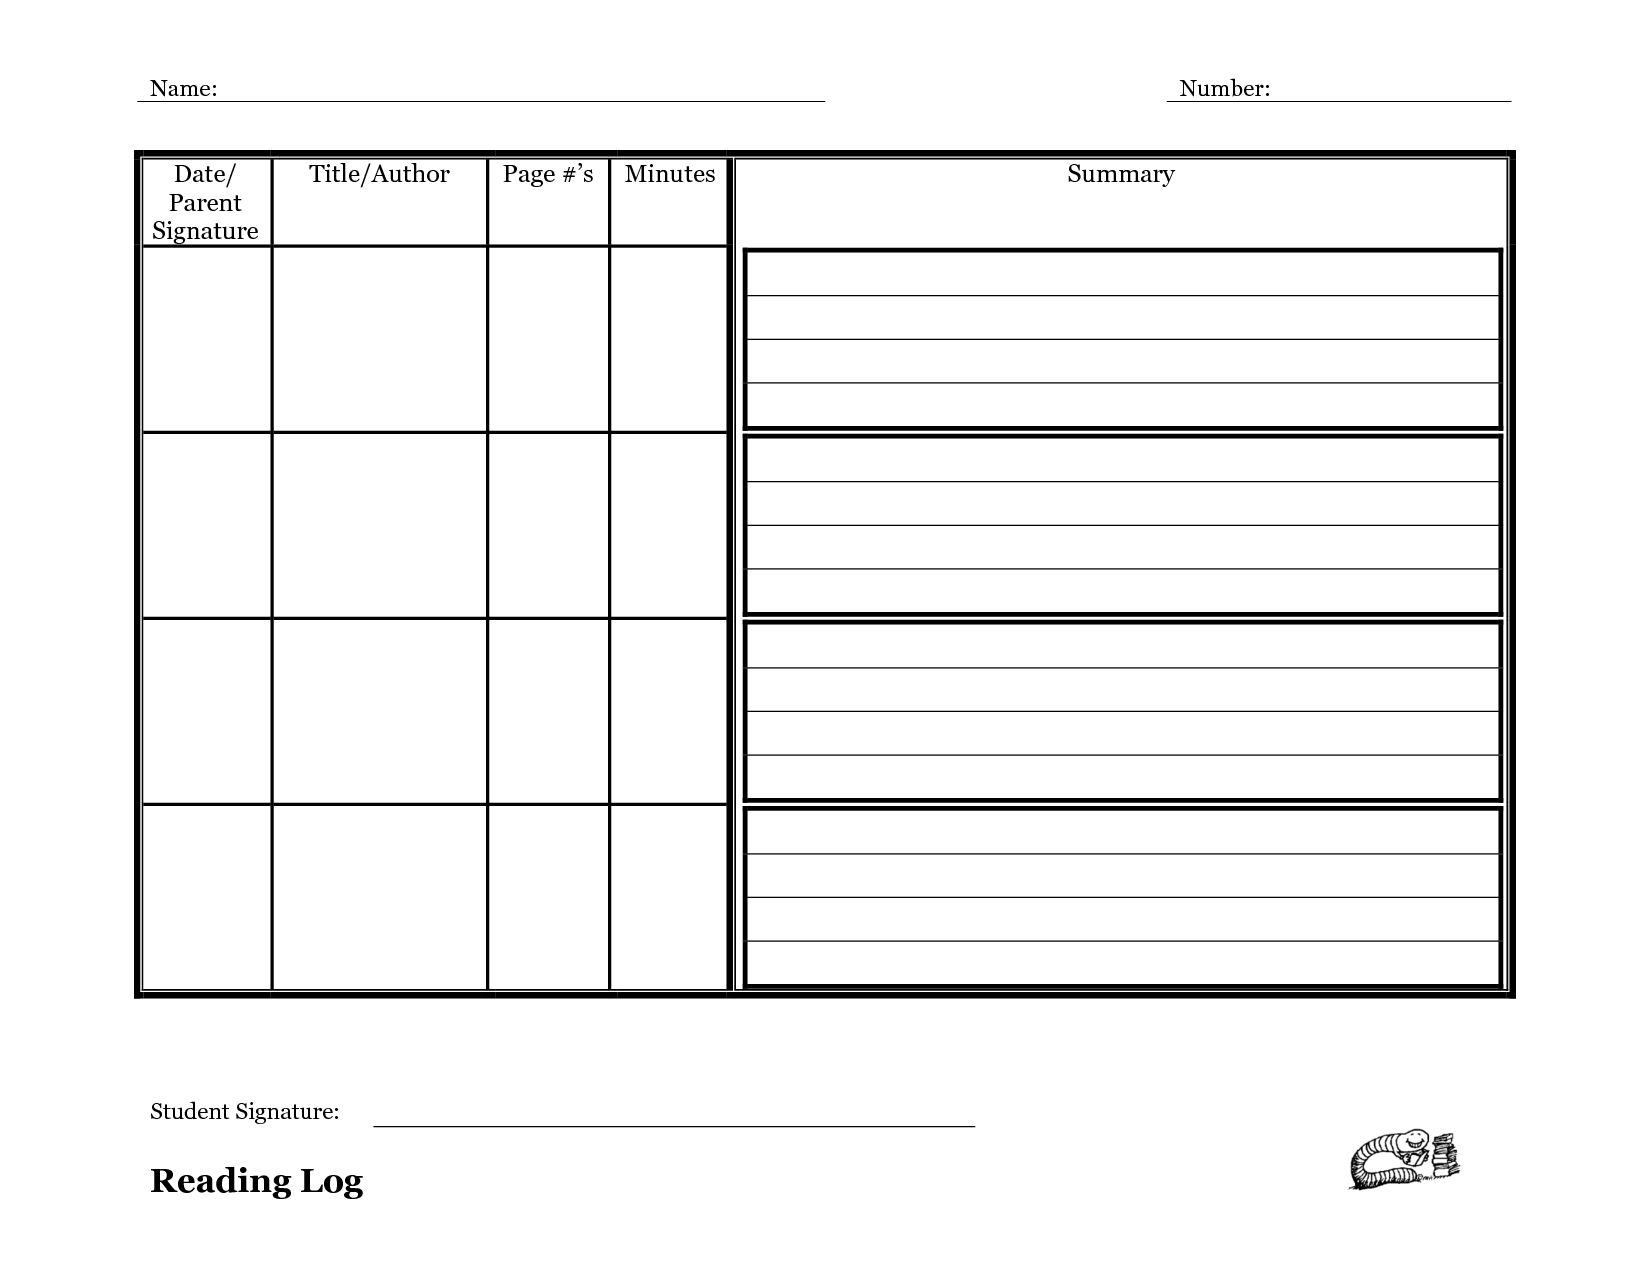 Reading Log Template With Summary